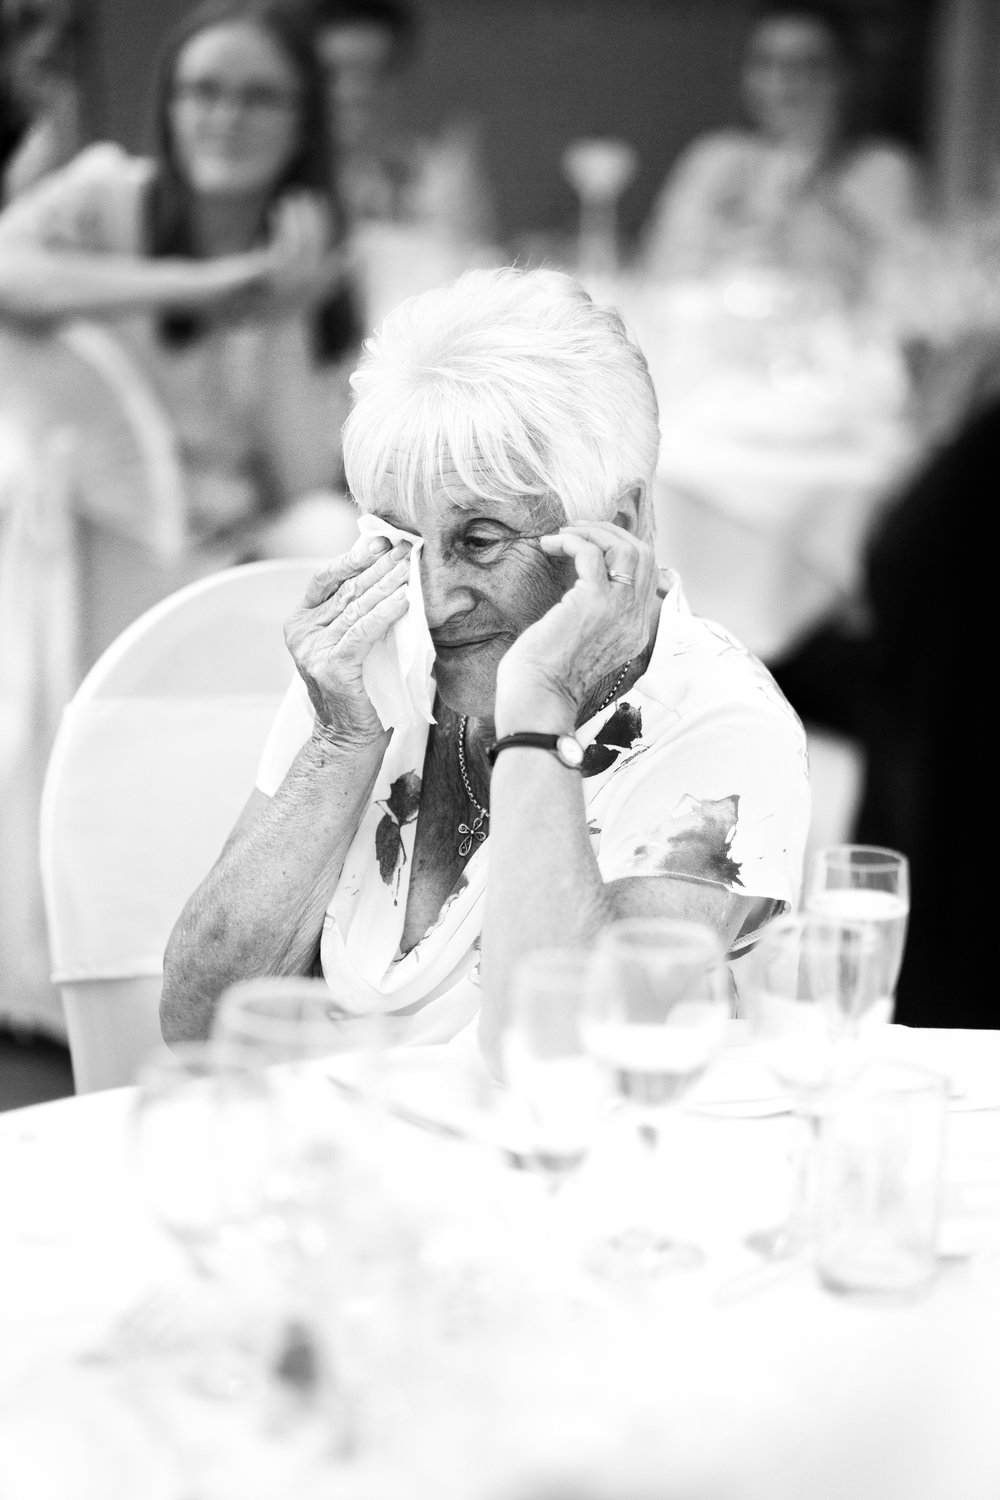 wedding-lea-cooper-photography-willenhall-west-midlands-wolverhampton-dudley-birmingham-uk-marriage-hadley-park-east-telford-sad-tears.jpg